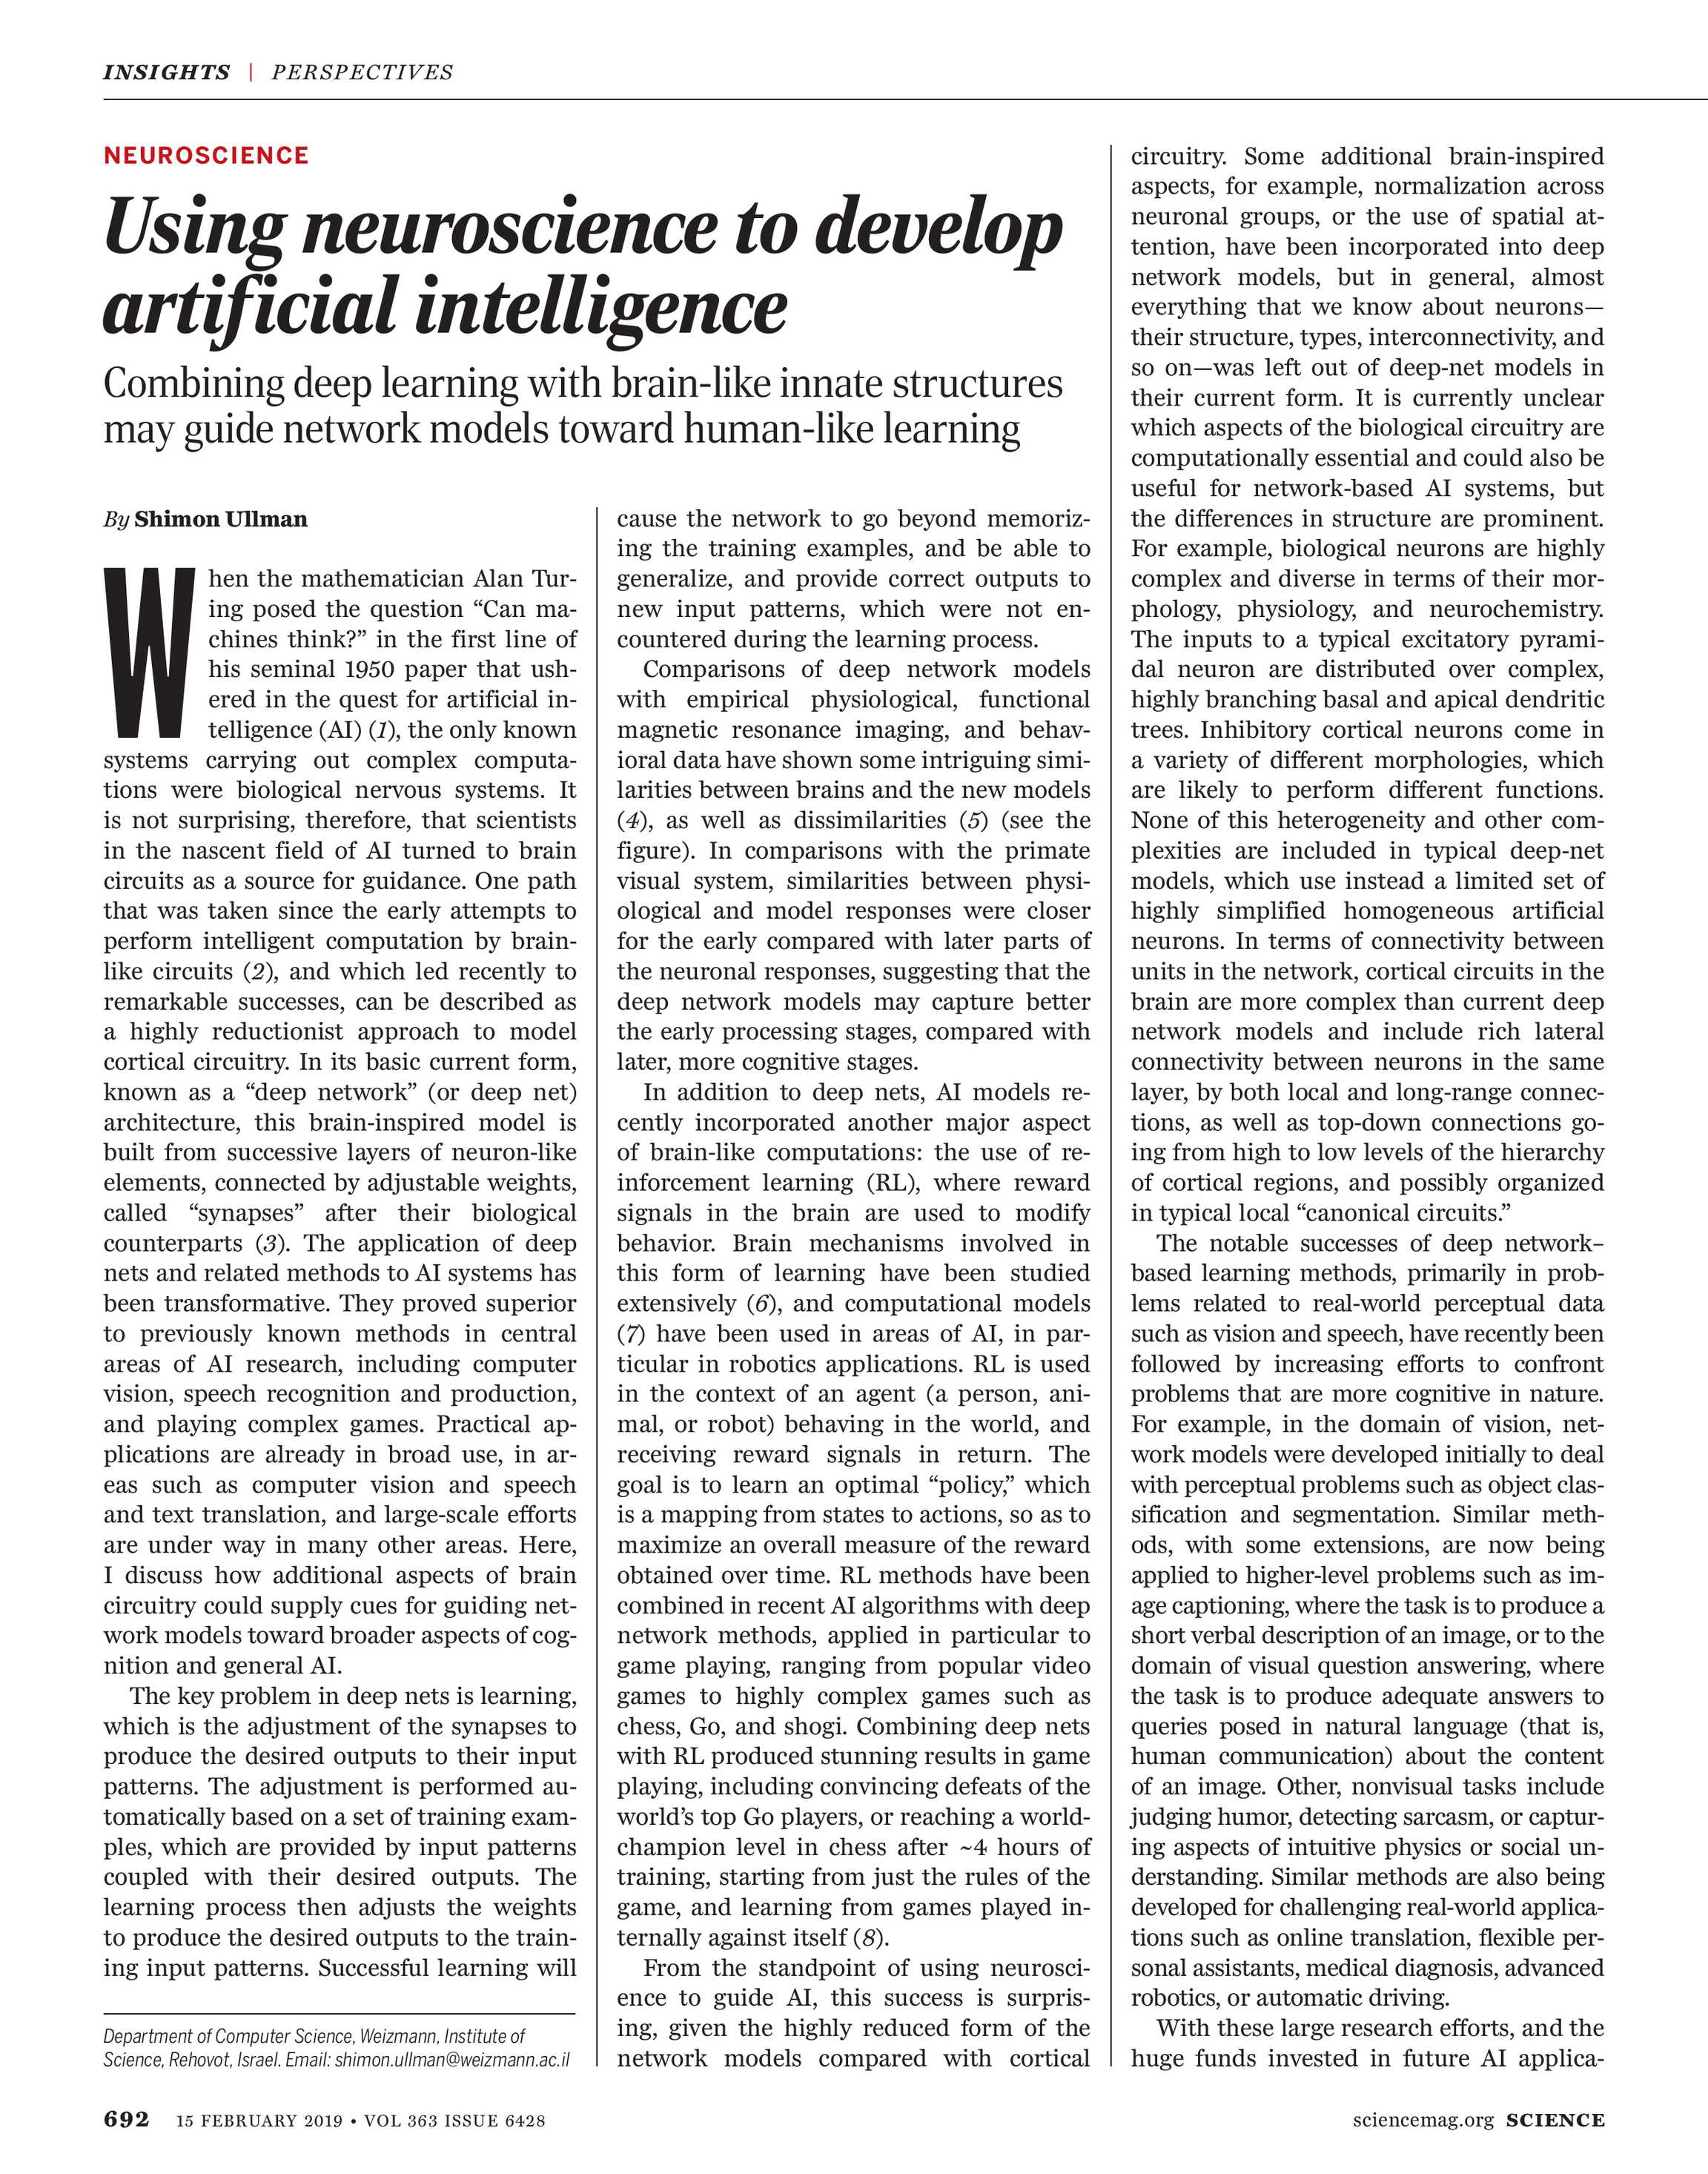 Science Magazine - February 15, 2019 - page 692